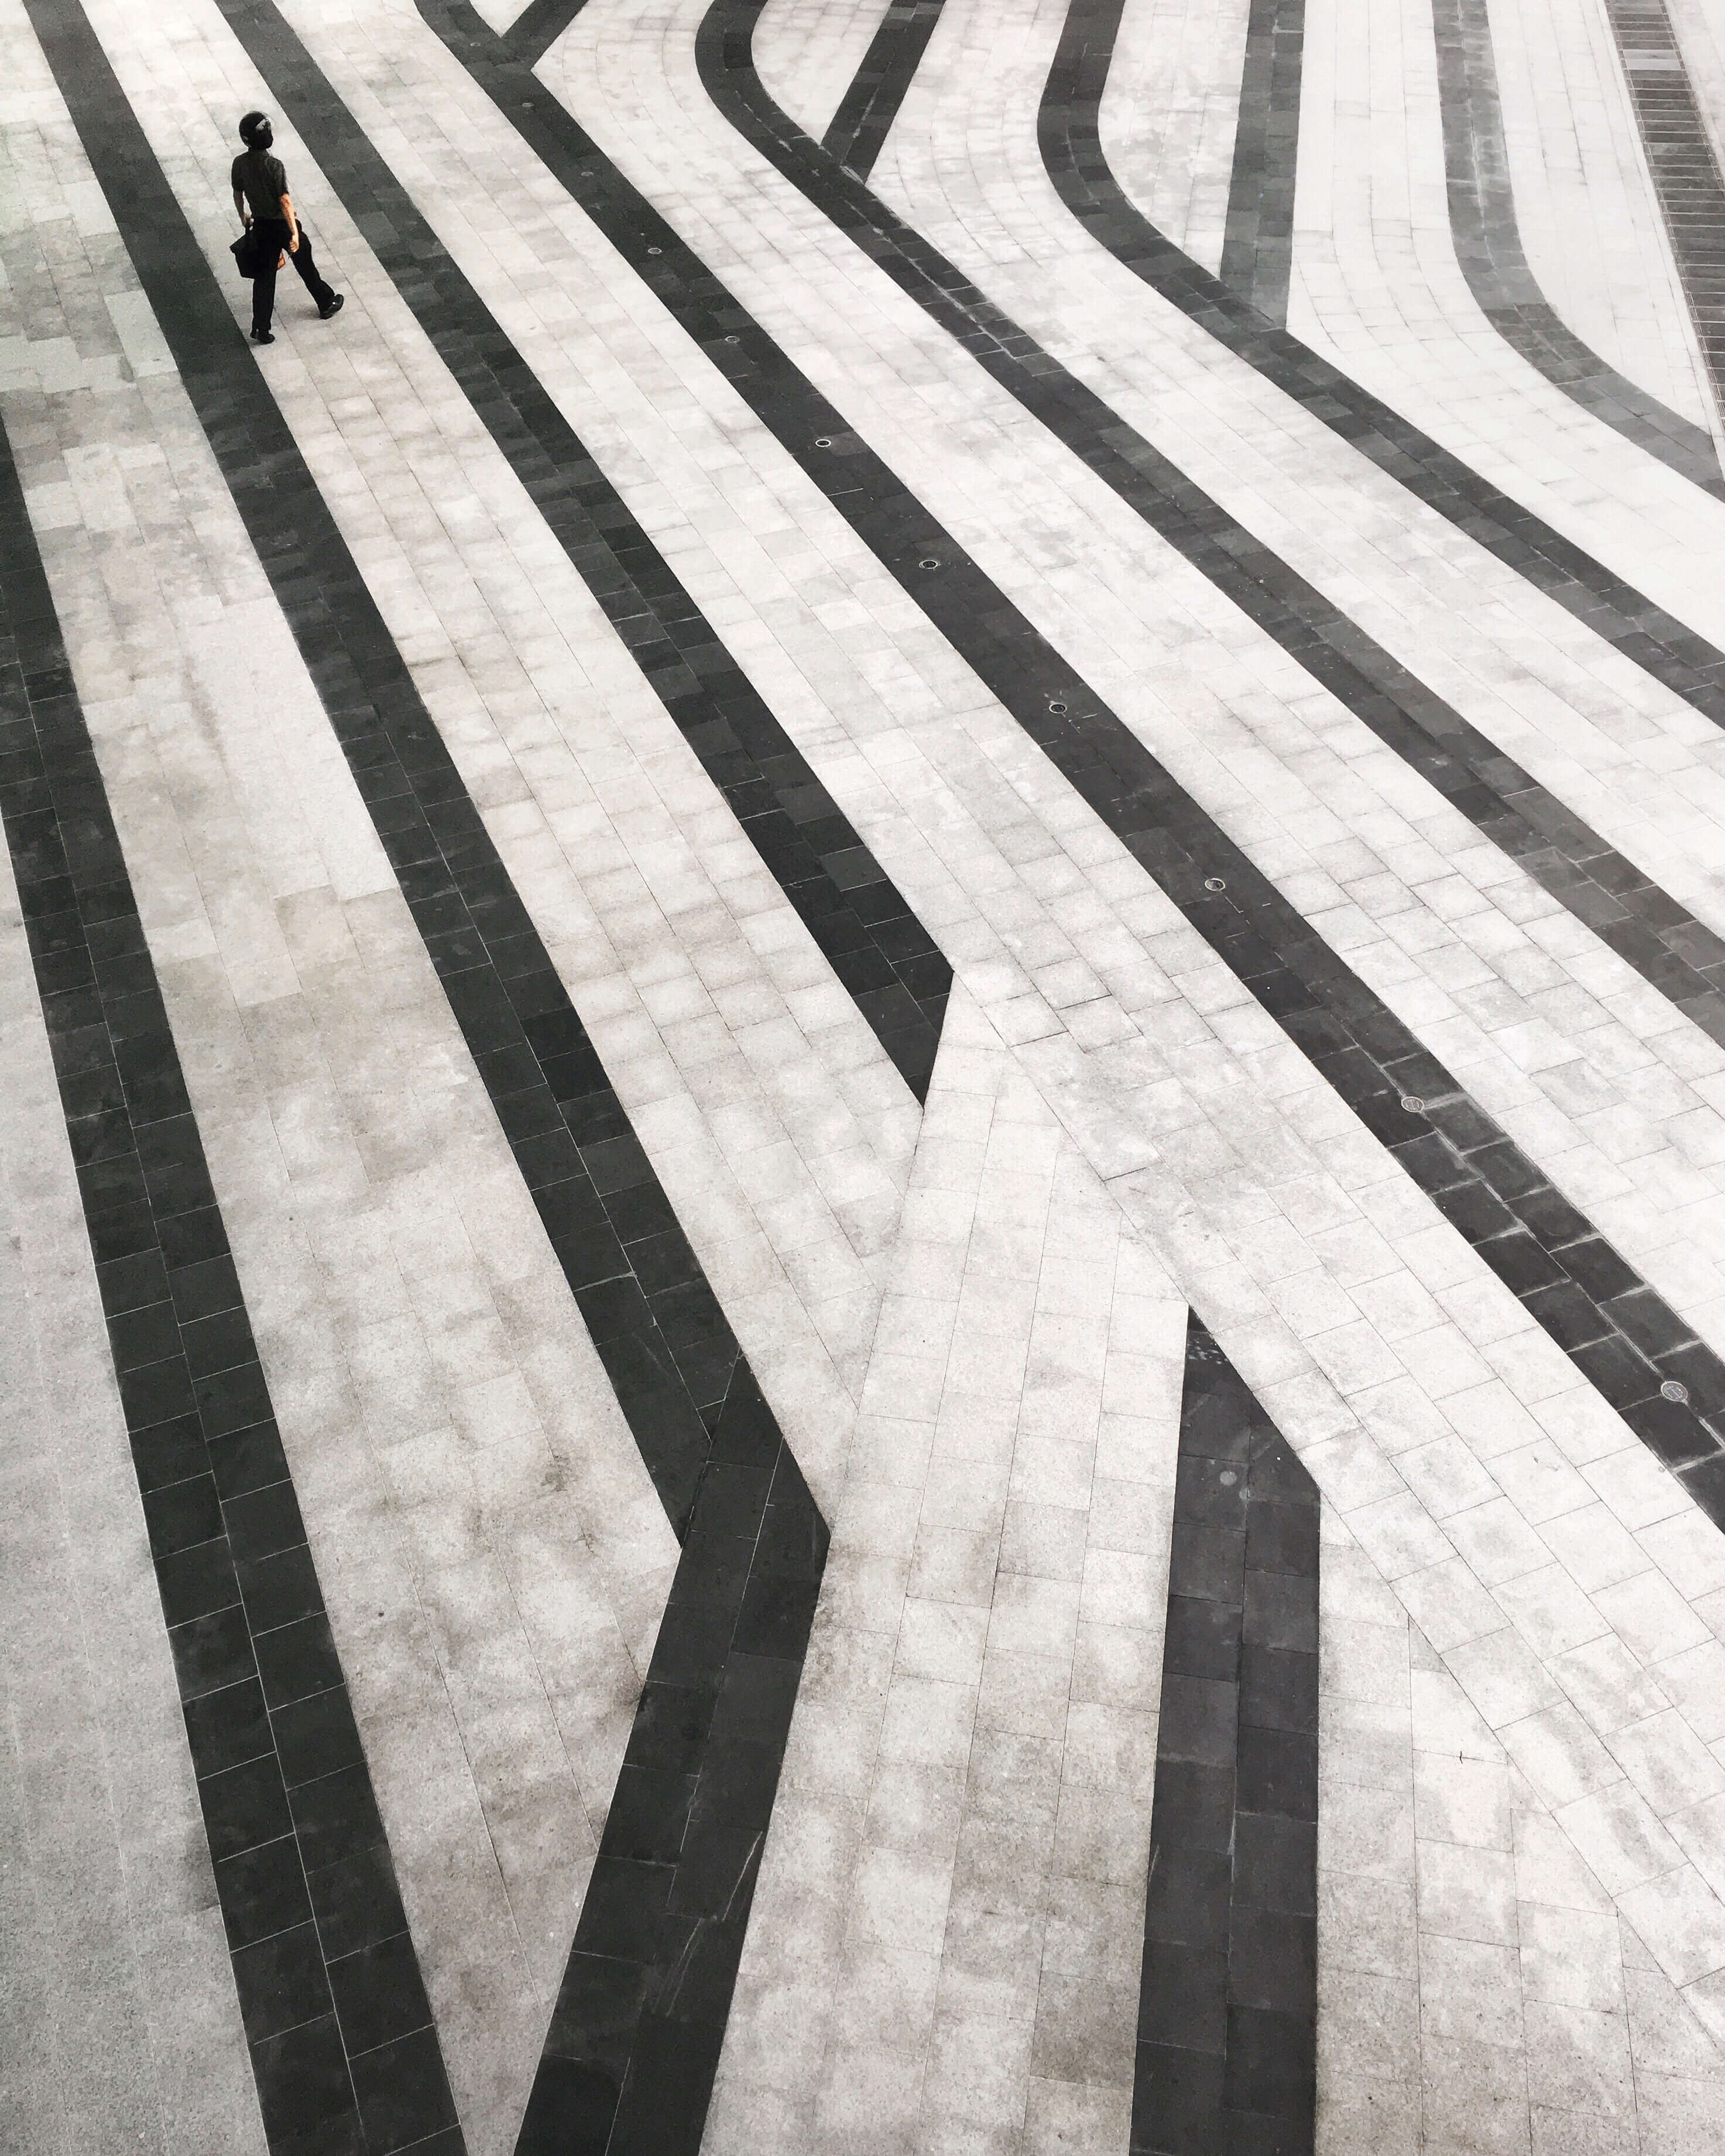 person walking across tiled floor